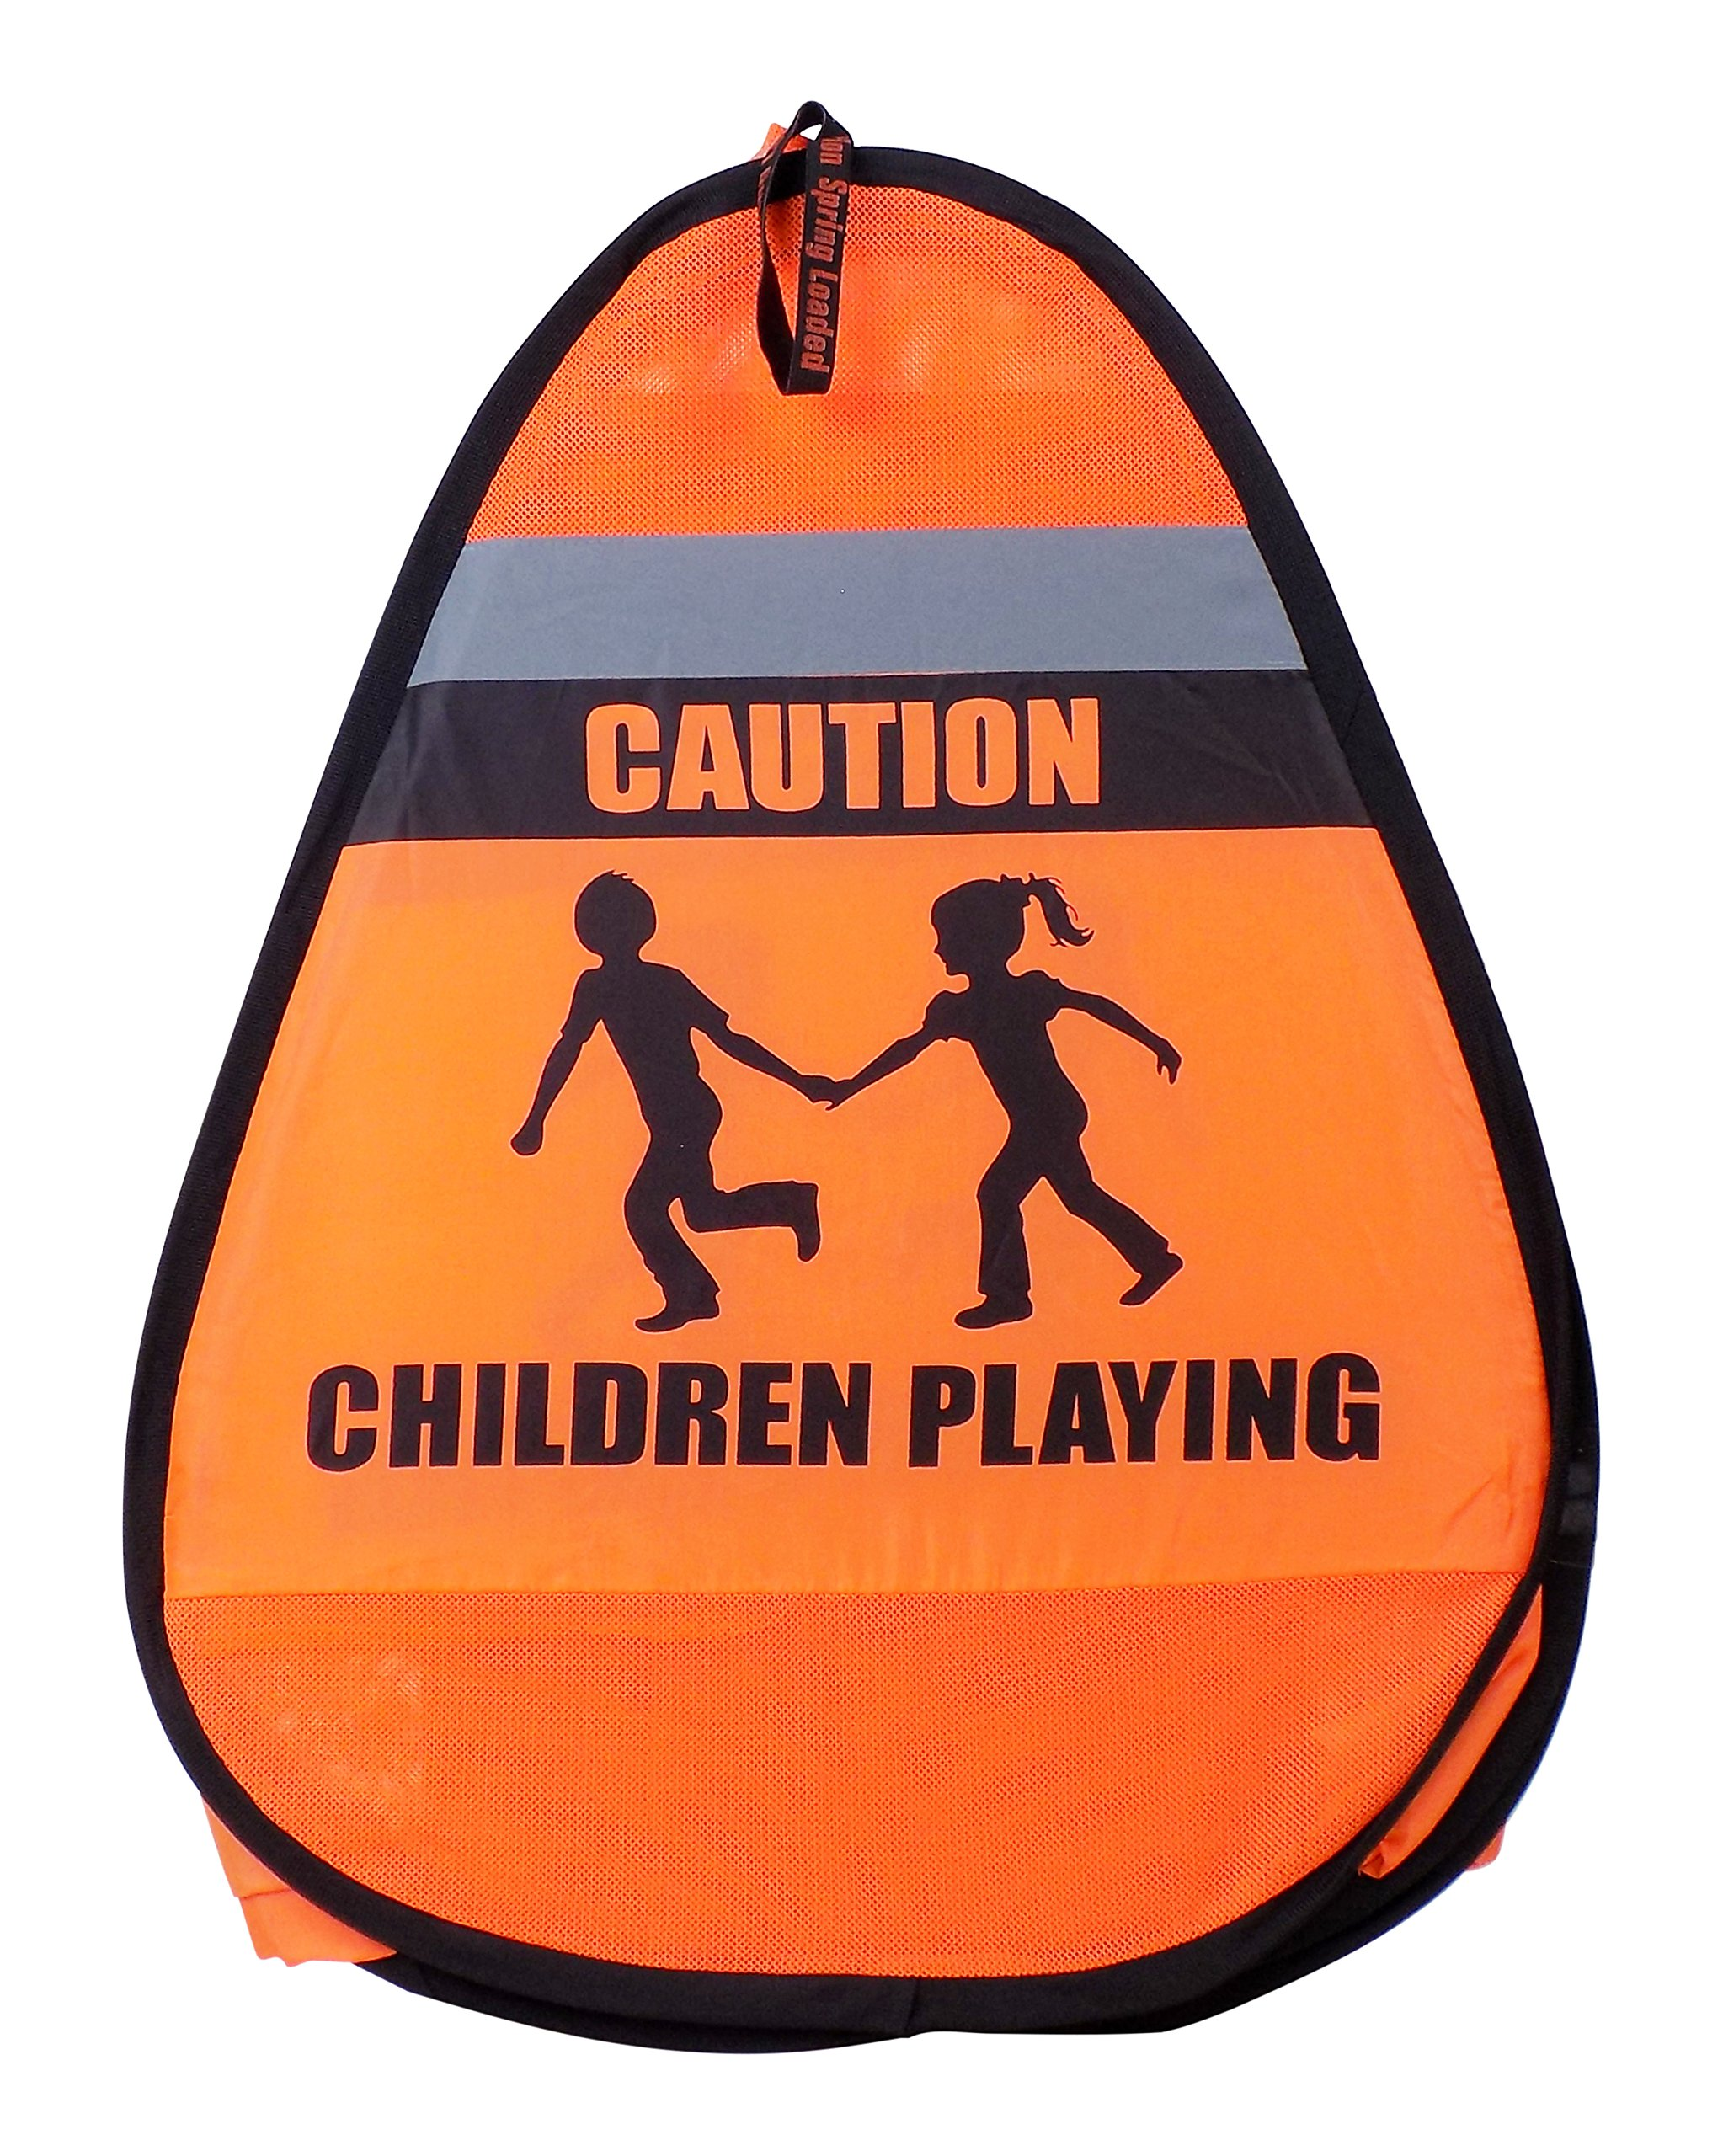 Children Playing Pop Up Orange Safety Cone Sign With Reflective Tape (2 Pack) by Novus (Image #4)